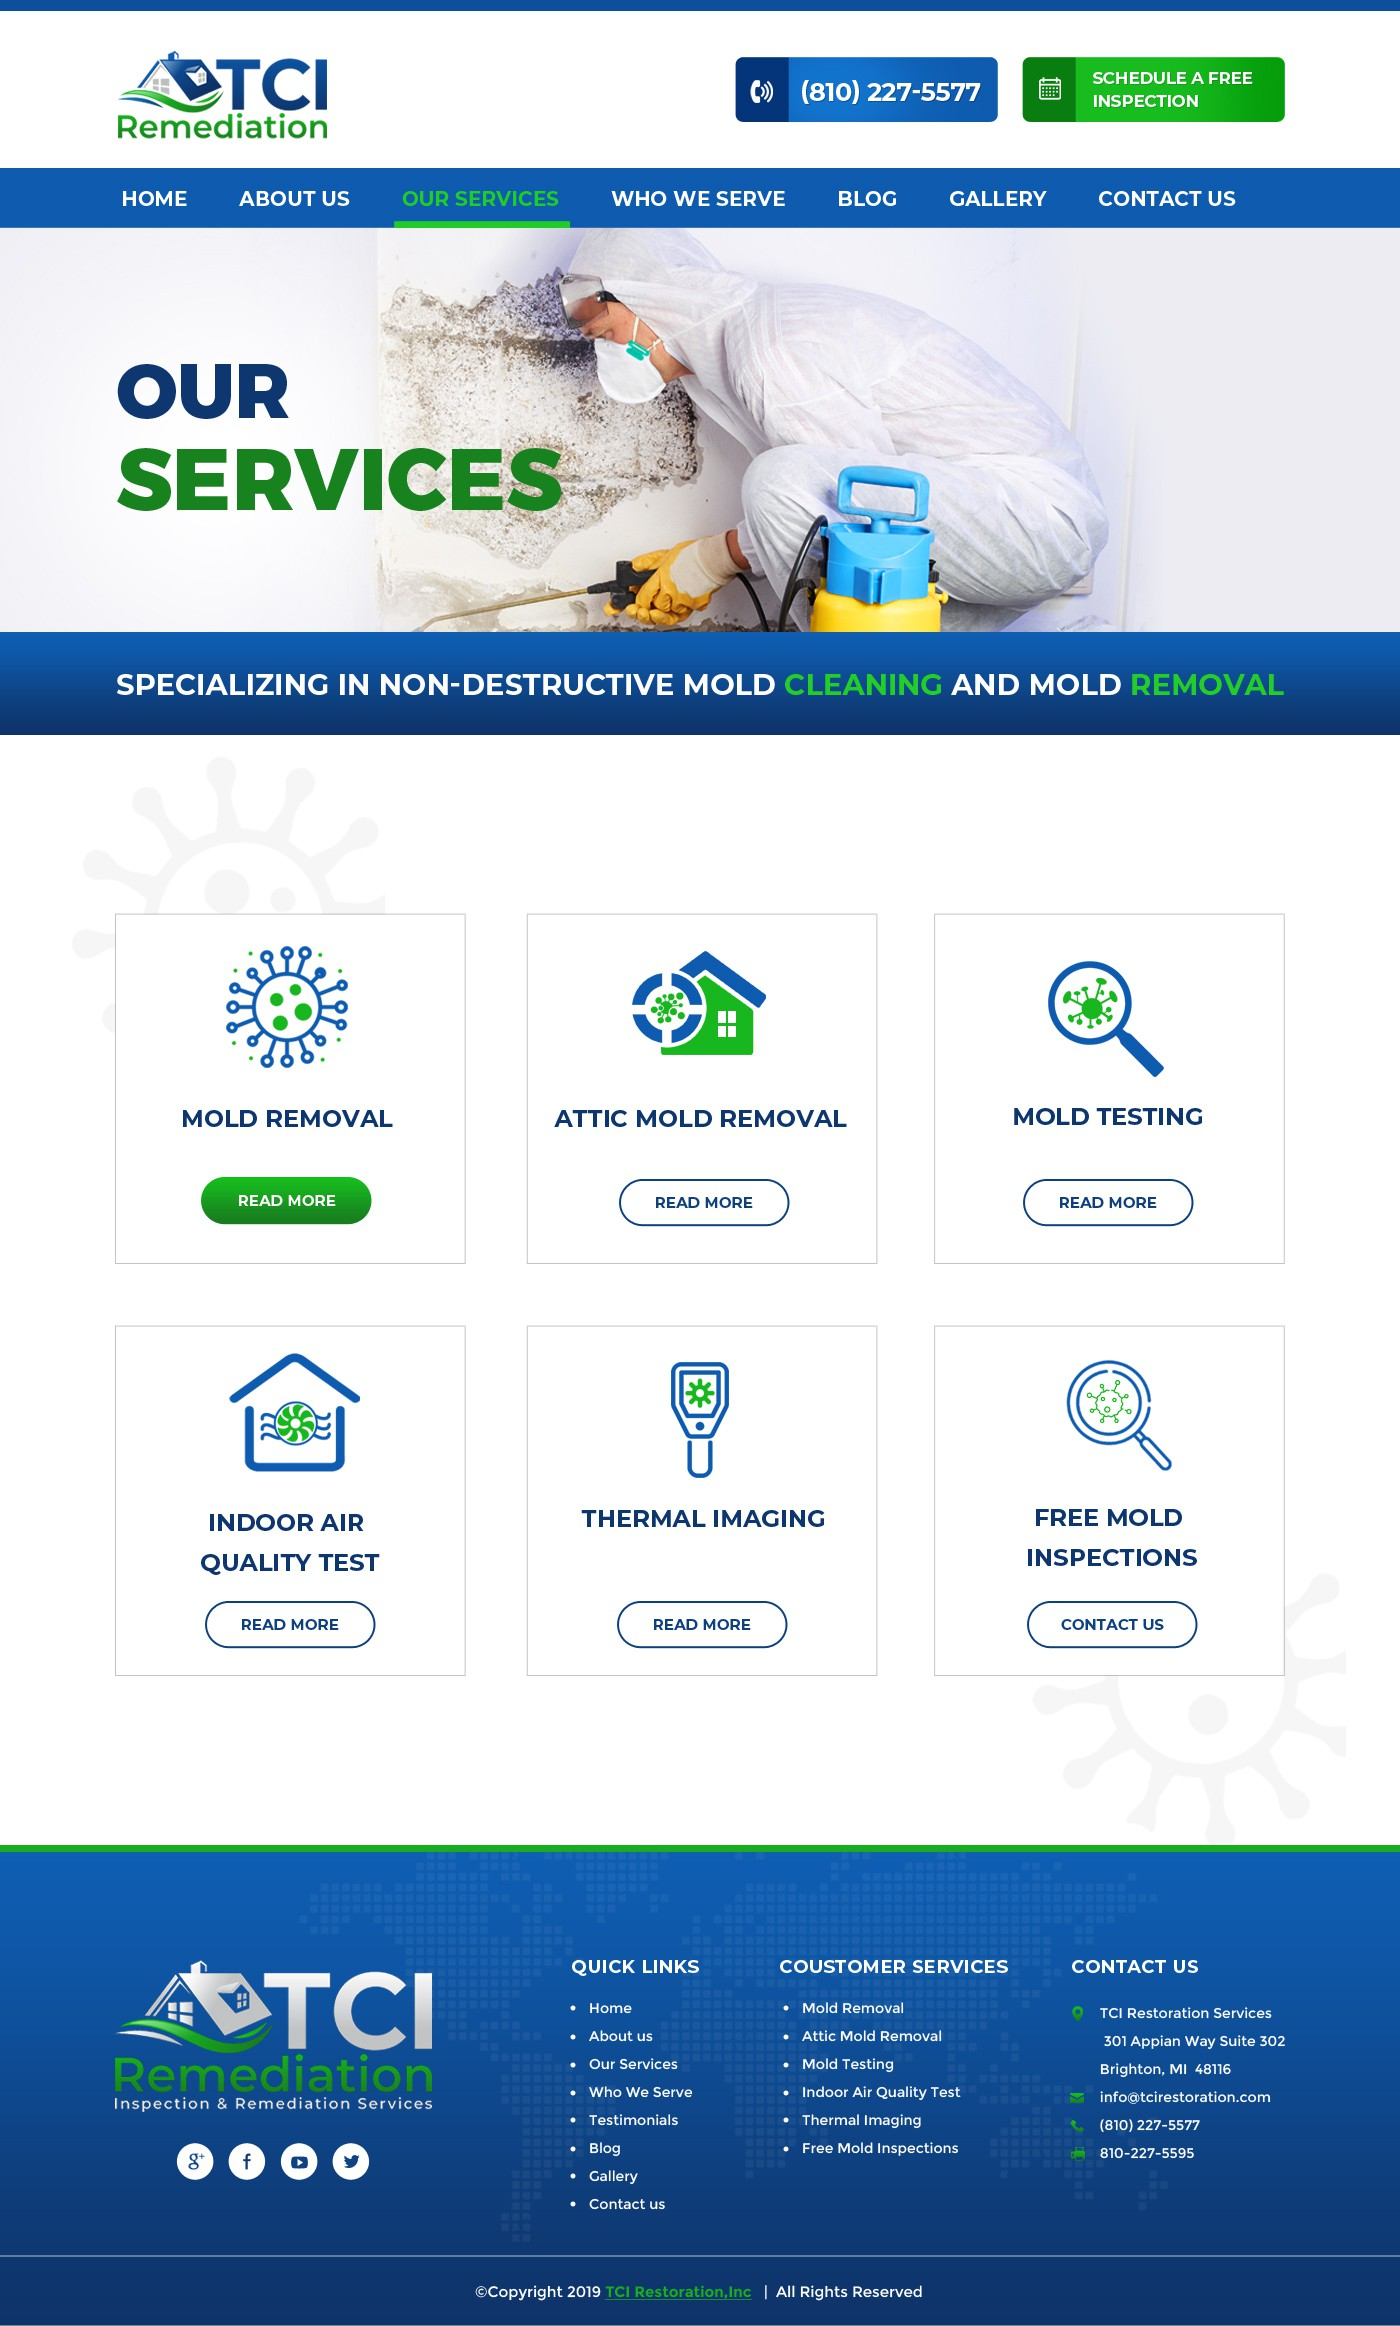 TCI Remediation website design for a mold inspection and remediation service company